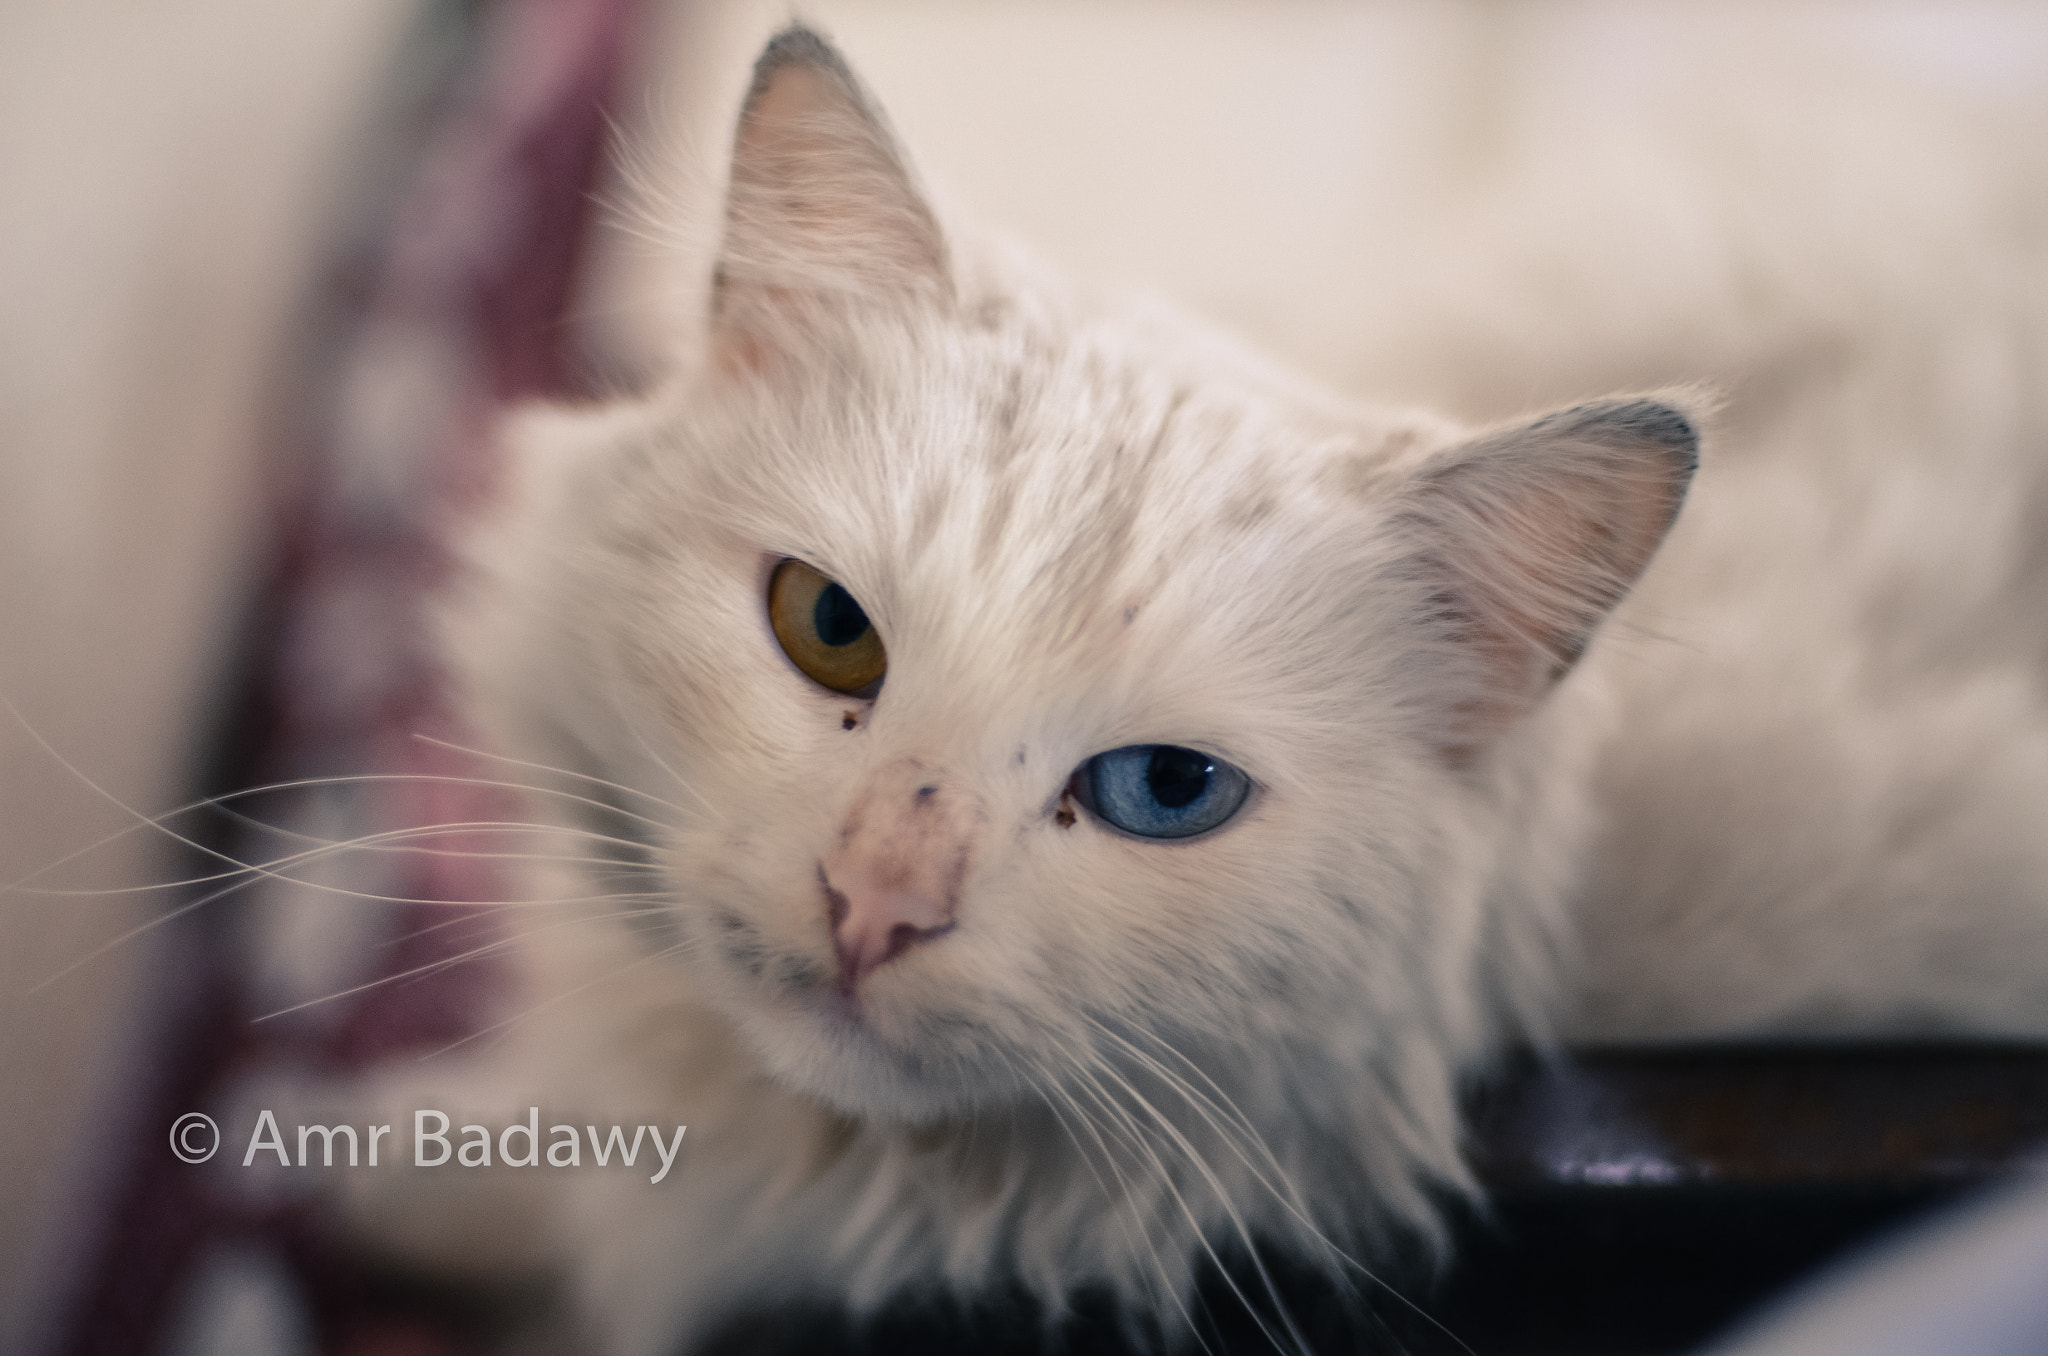 Photograph A Cat by Amr Badawy on 500px